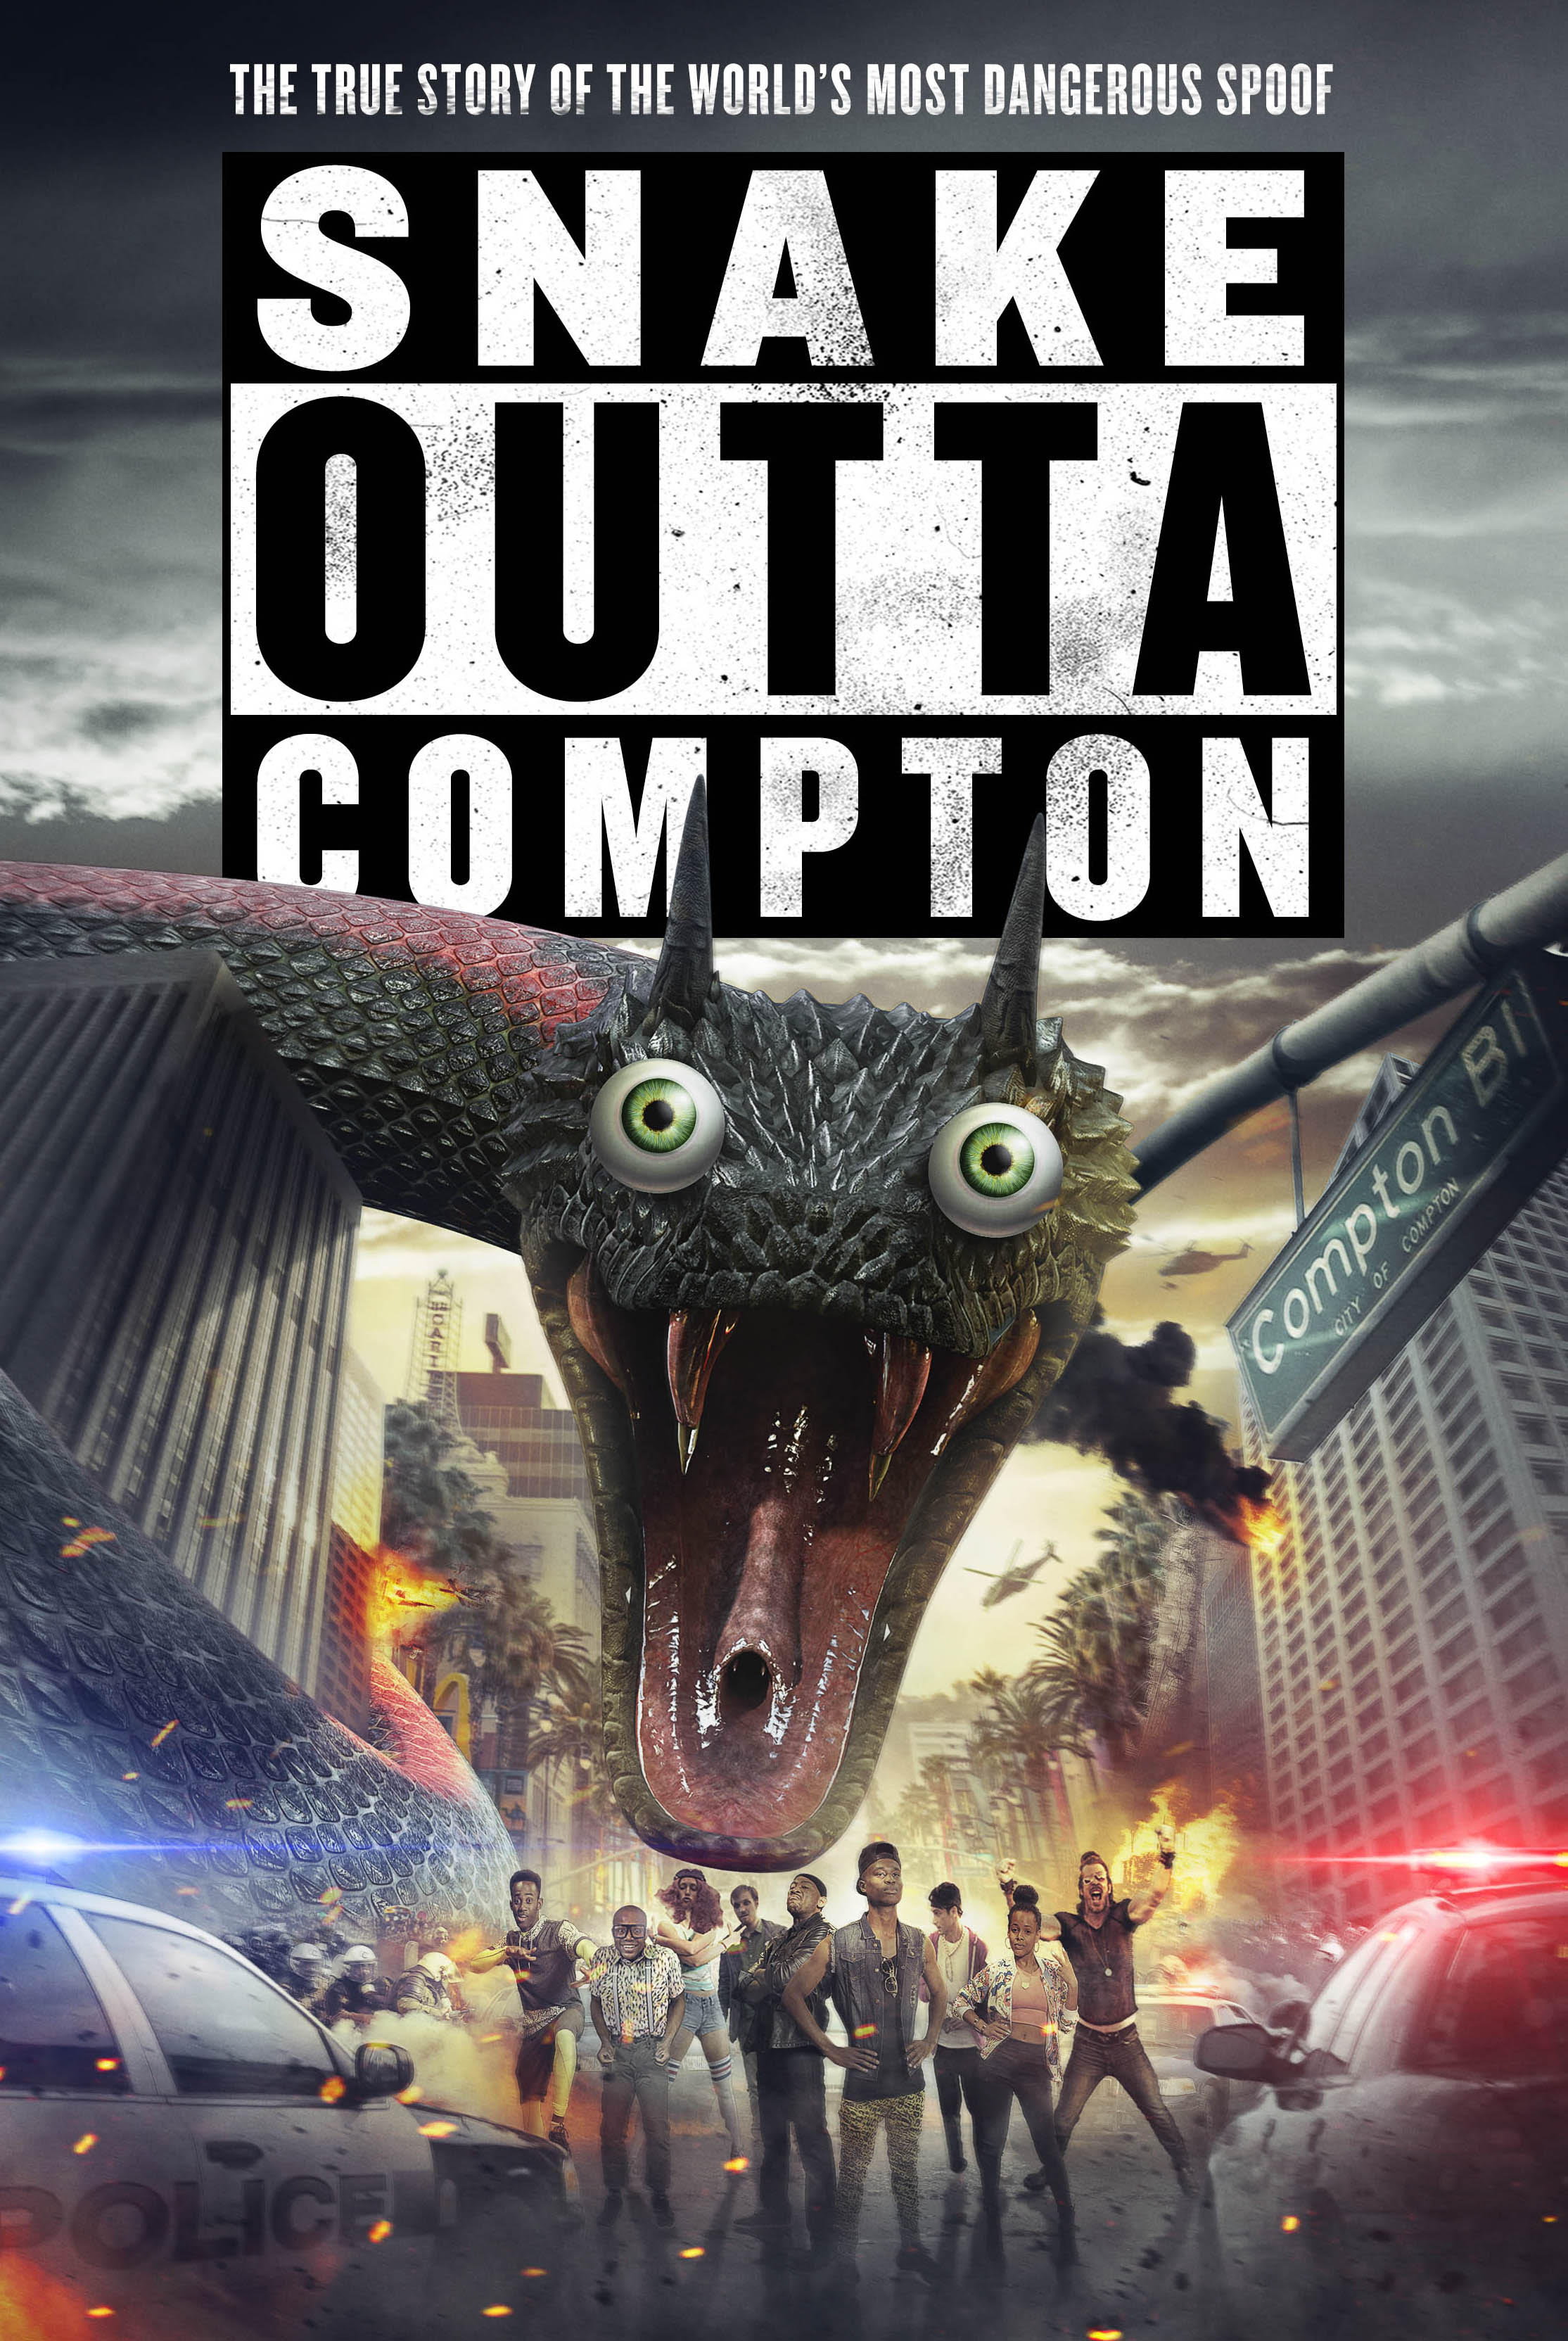 unnamed 2 - Snake Outta Compton Trailer Is an Utterly Ridiculous Delight